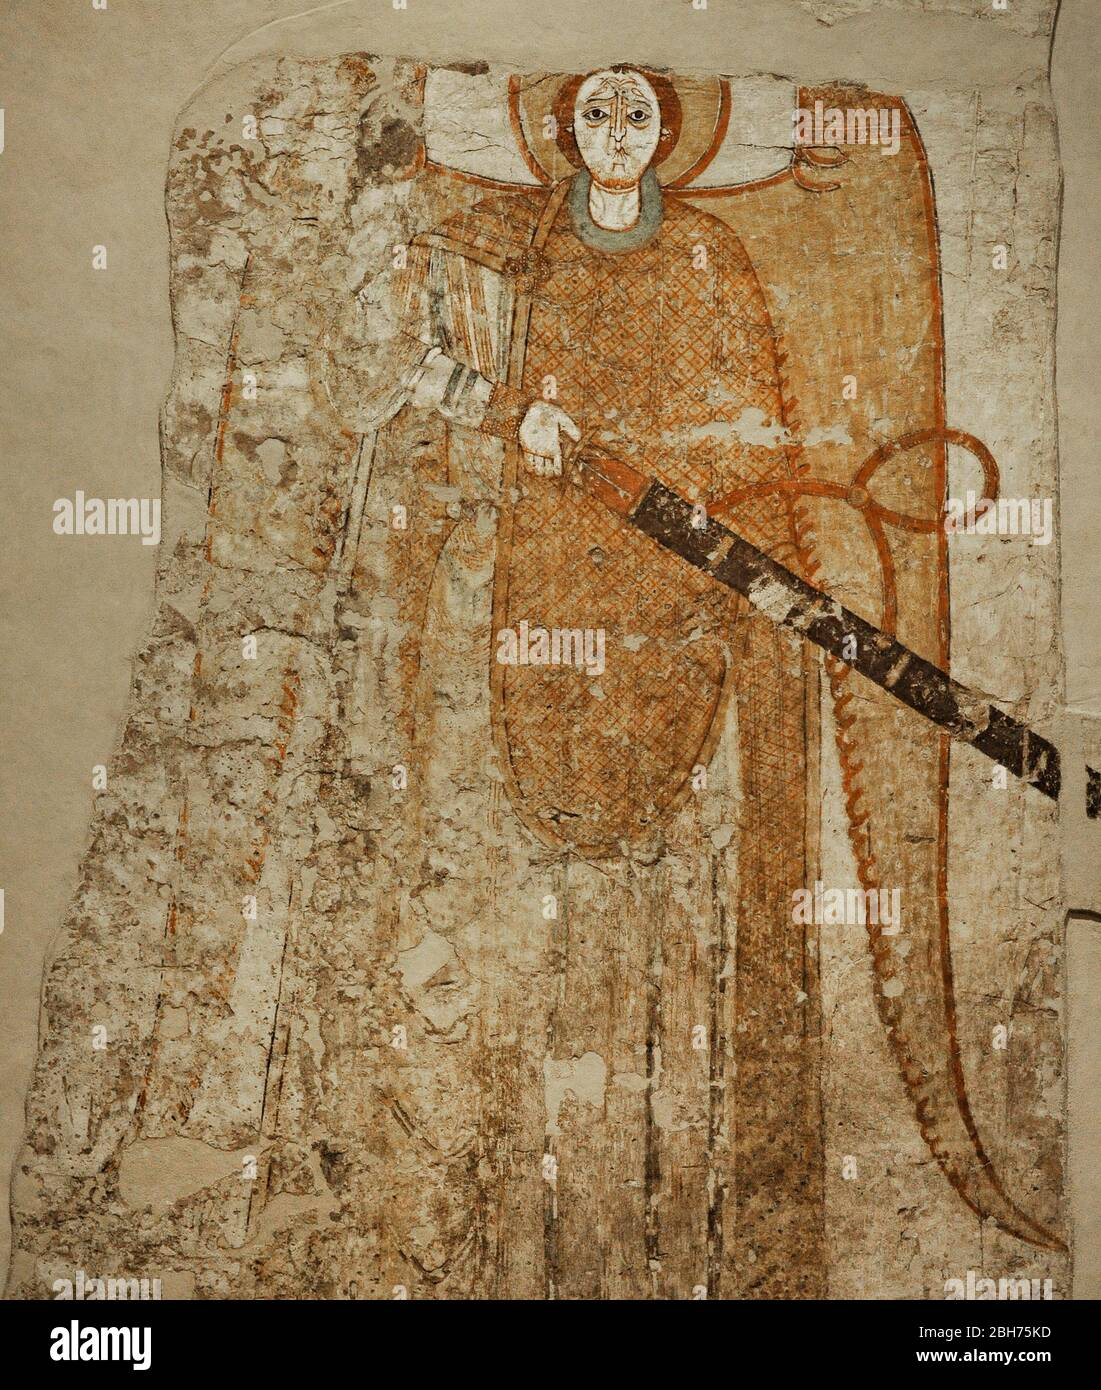 Fresco depicting an archangel with sword. Porch of the southern entrance. Cathedral of Faras. 12th-13th centuries. Faras Gallery. National Museum. Warsaw. Poland. Stock Photo